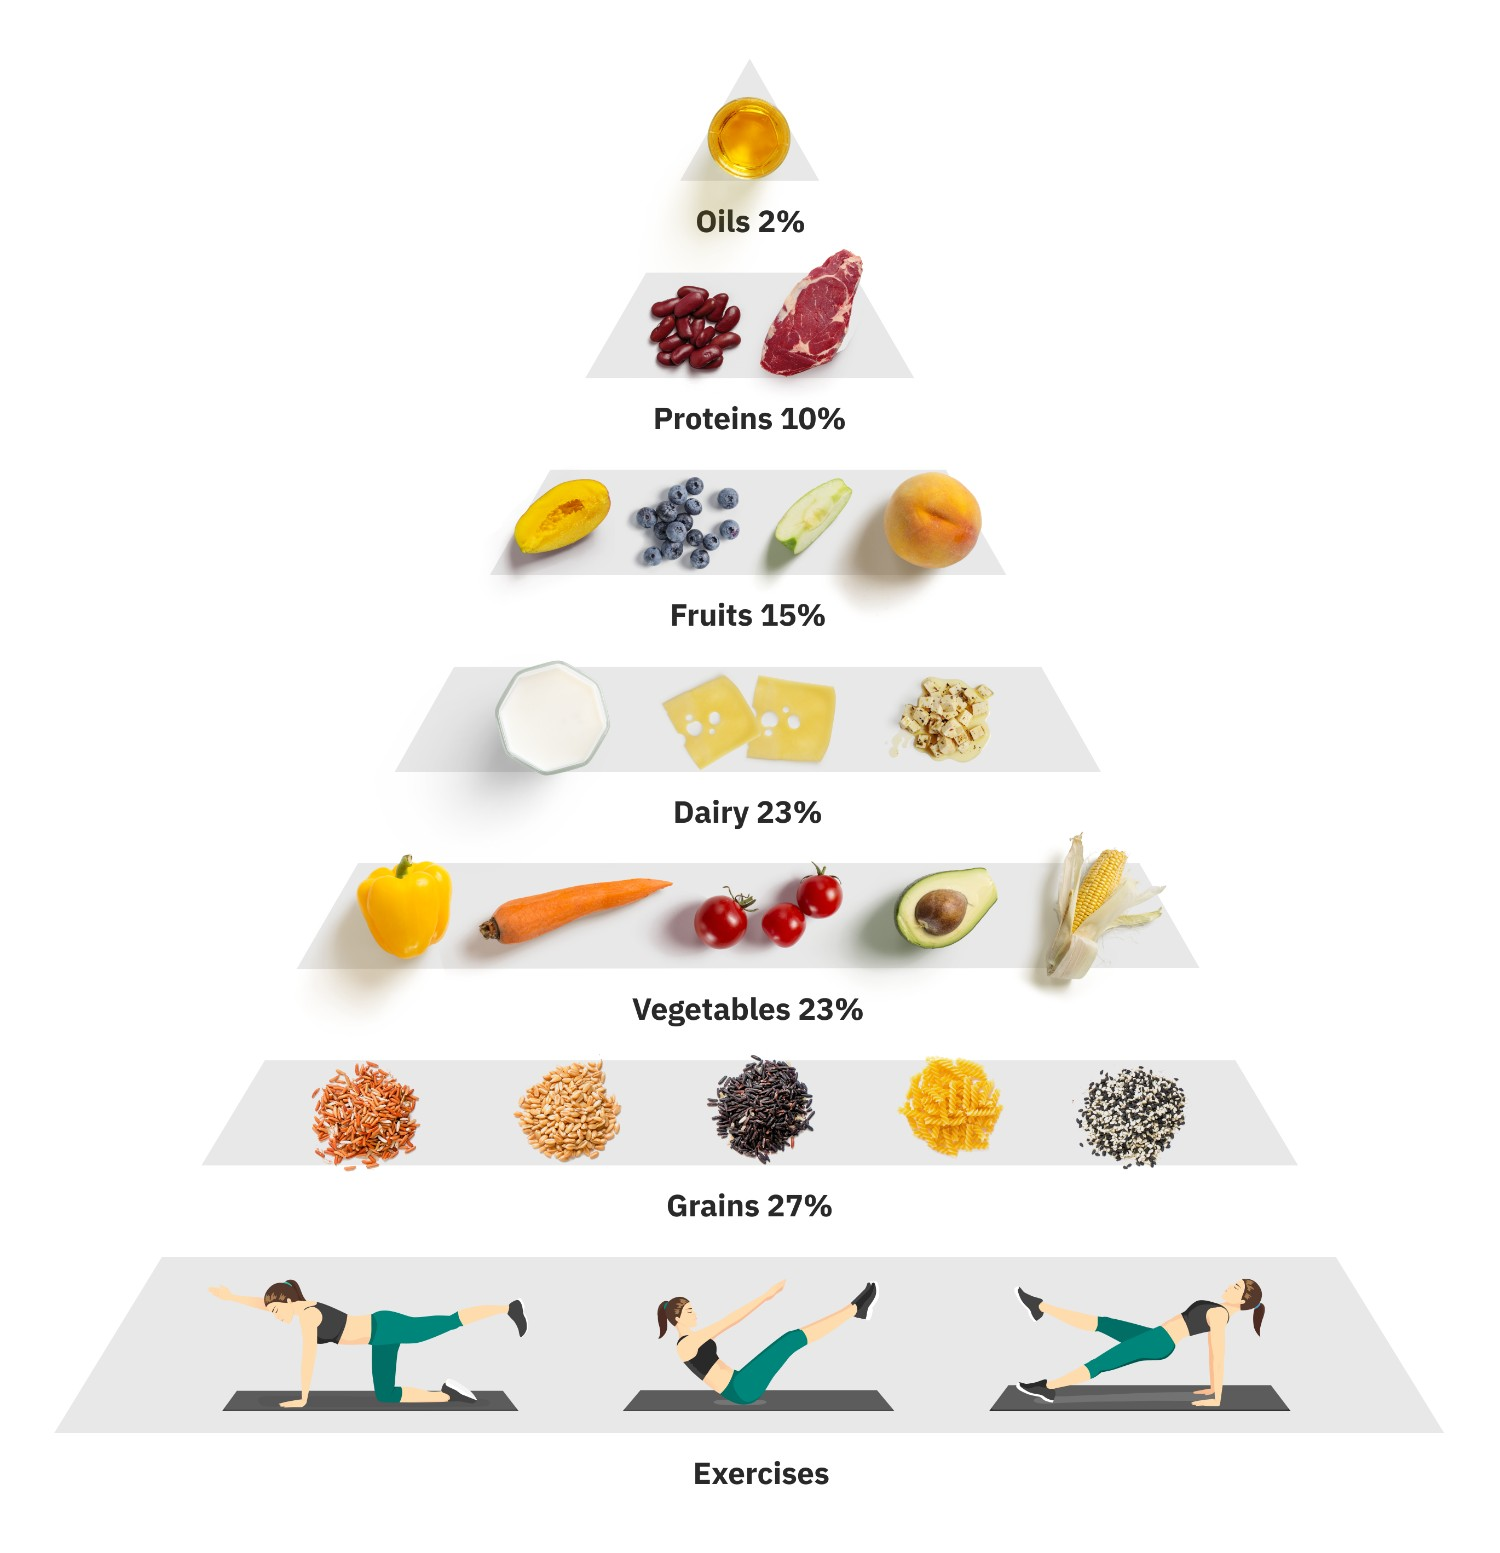 A traditional food pyramid has grains and vegetables in its base.